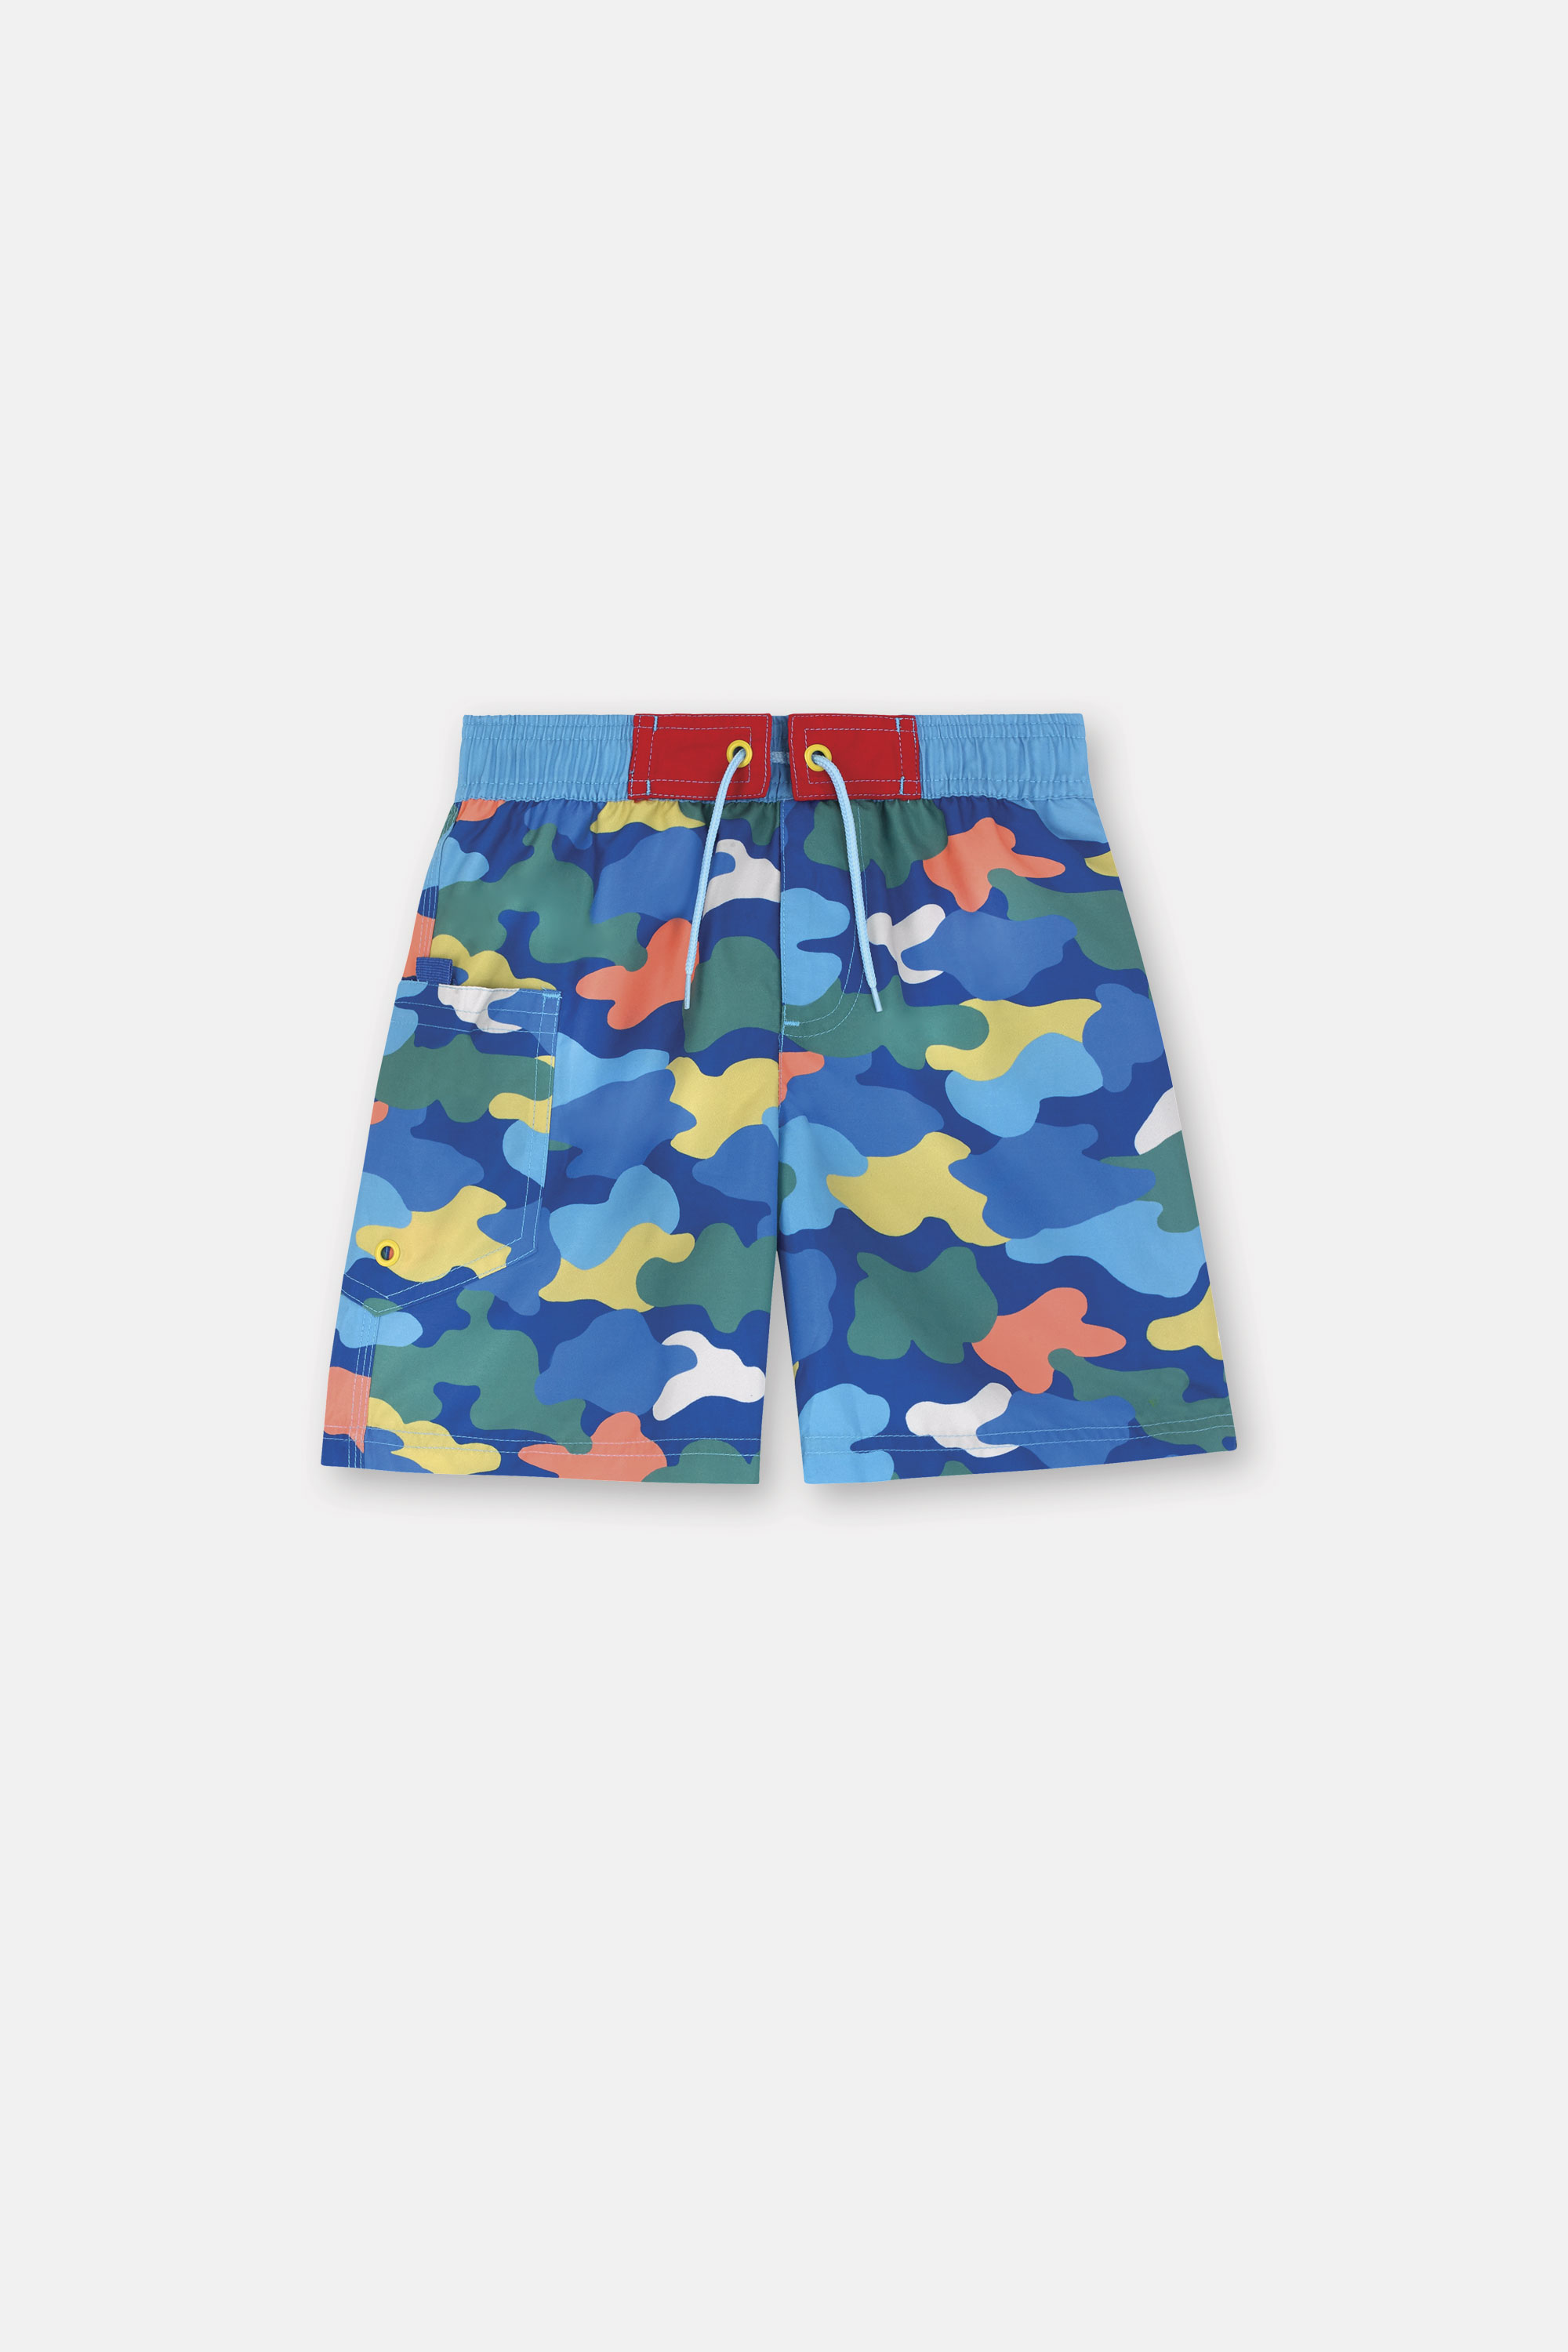 Cath Kidston Camouflage Kids Board Shorts in Marine, 100% Polyester Microfibre, 3-4 yr